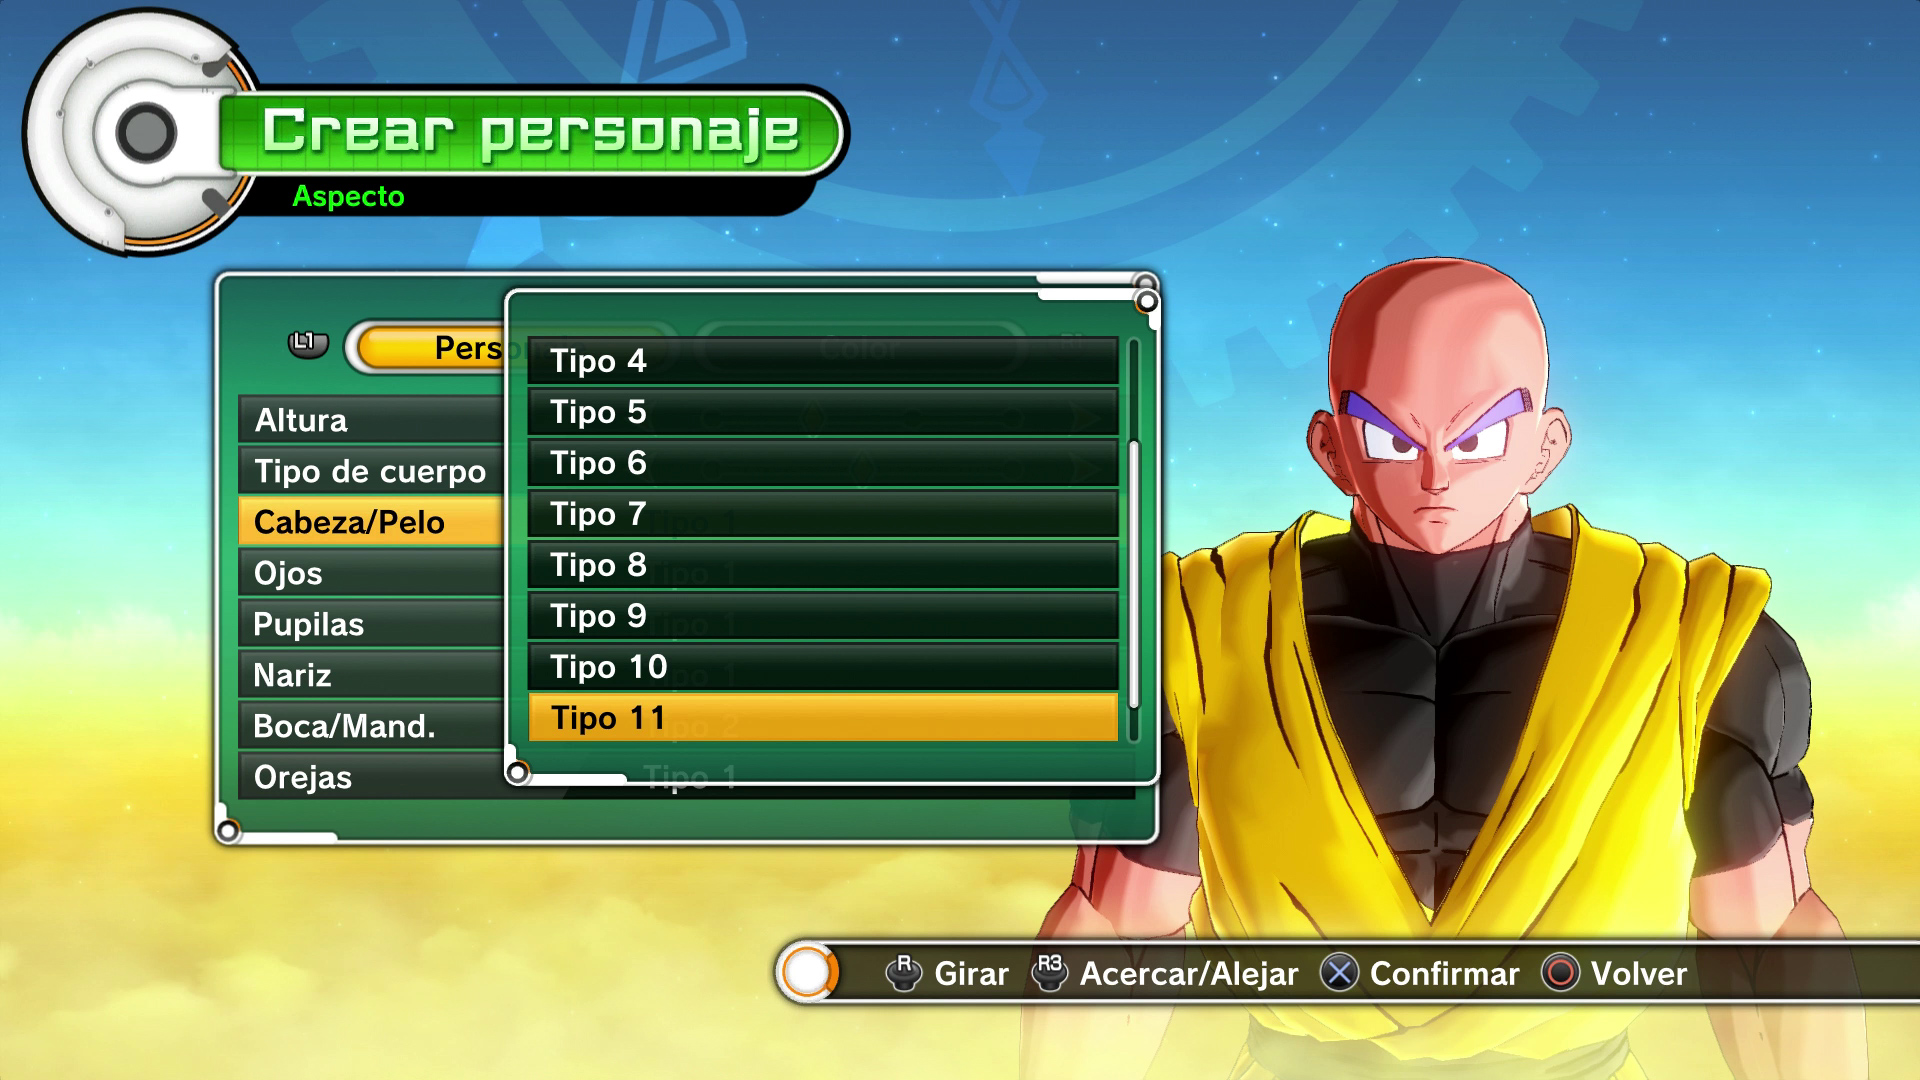 Gu a dragon ball xenoverse introducci n y prueba de for Chambre dragon ball z